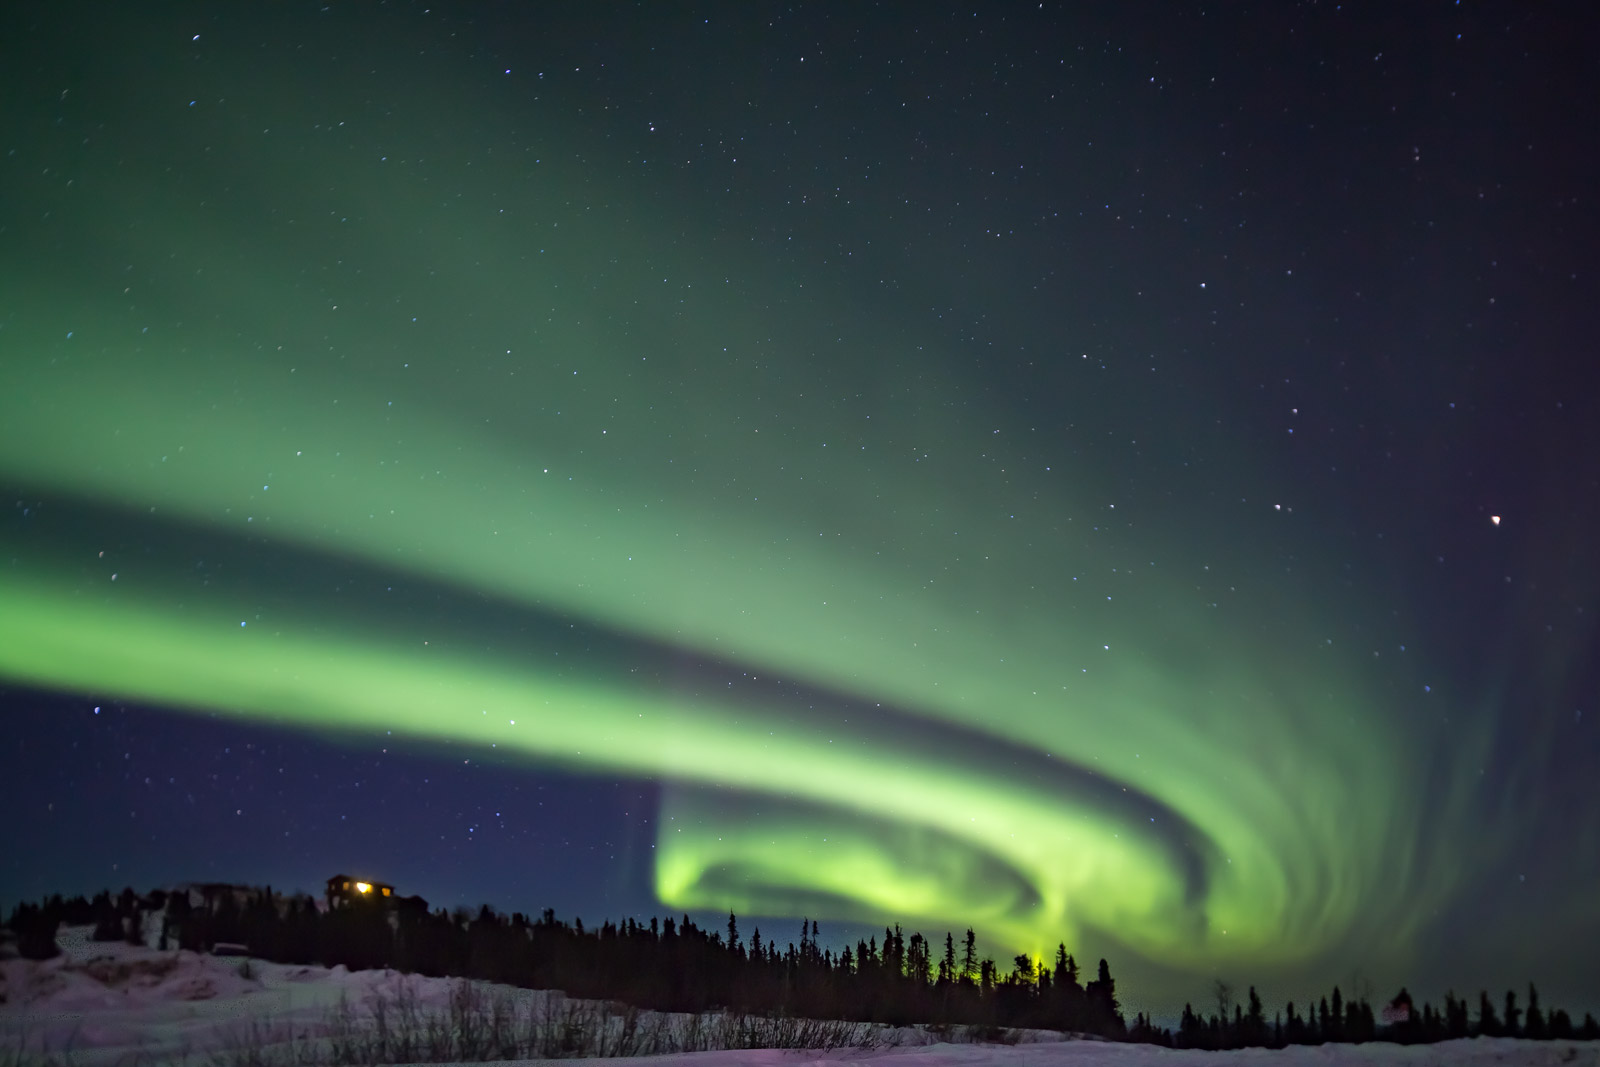 A Limited Edition, Fine Art photograph of a swirling green aurora over a hill and small cabin in Fairbanks, Alaska.  Available...